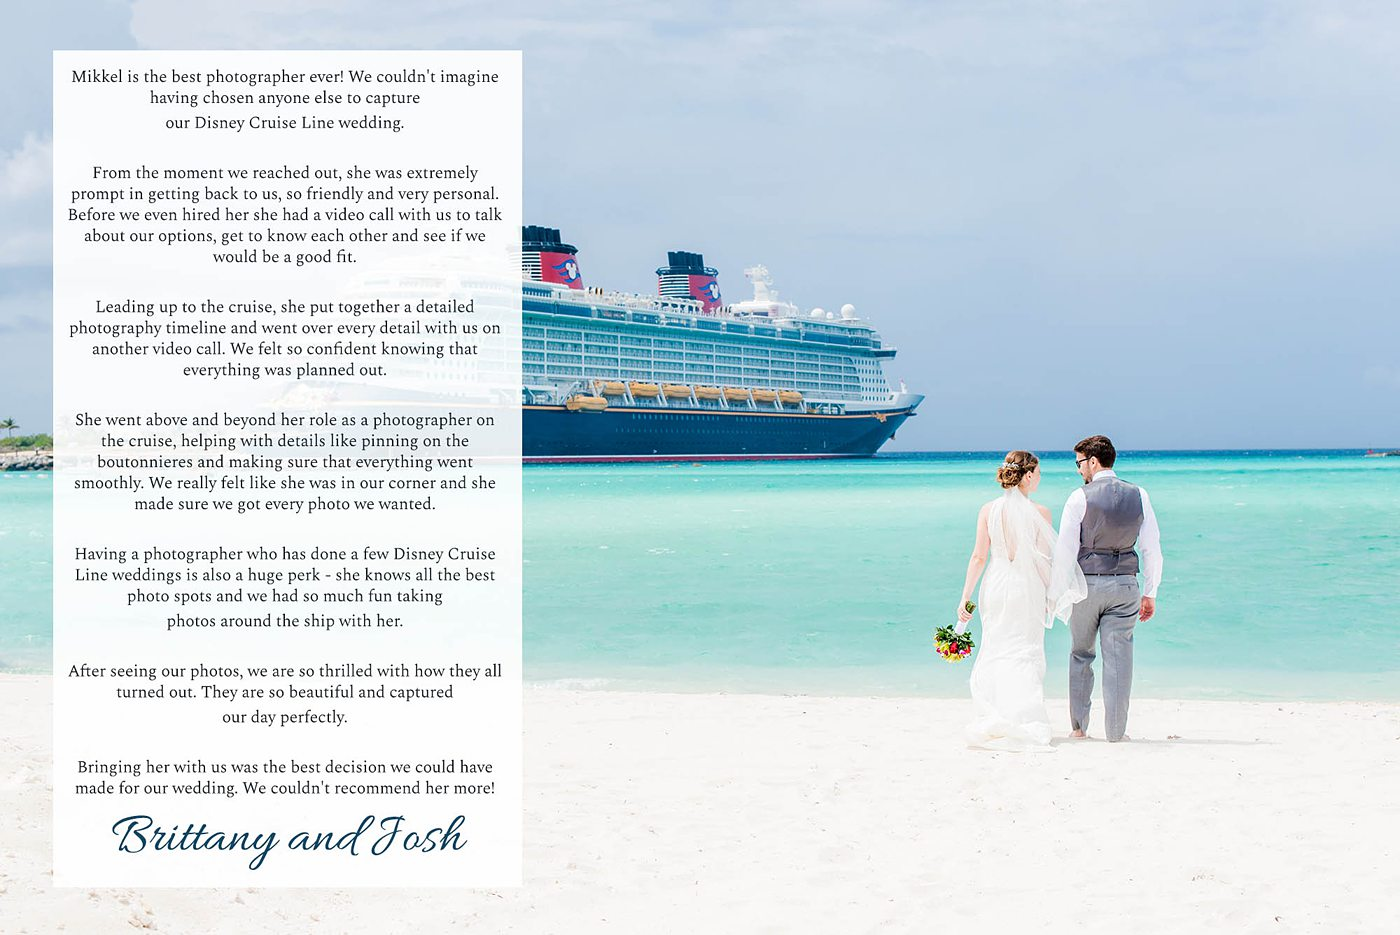 Destination wedding photographer, Mikkel Paige Photography, testimonials and reviews from luxury wedding clients at Castaway Cay, on Disney Cruise Line.